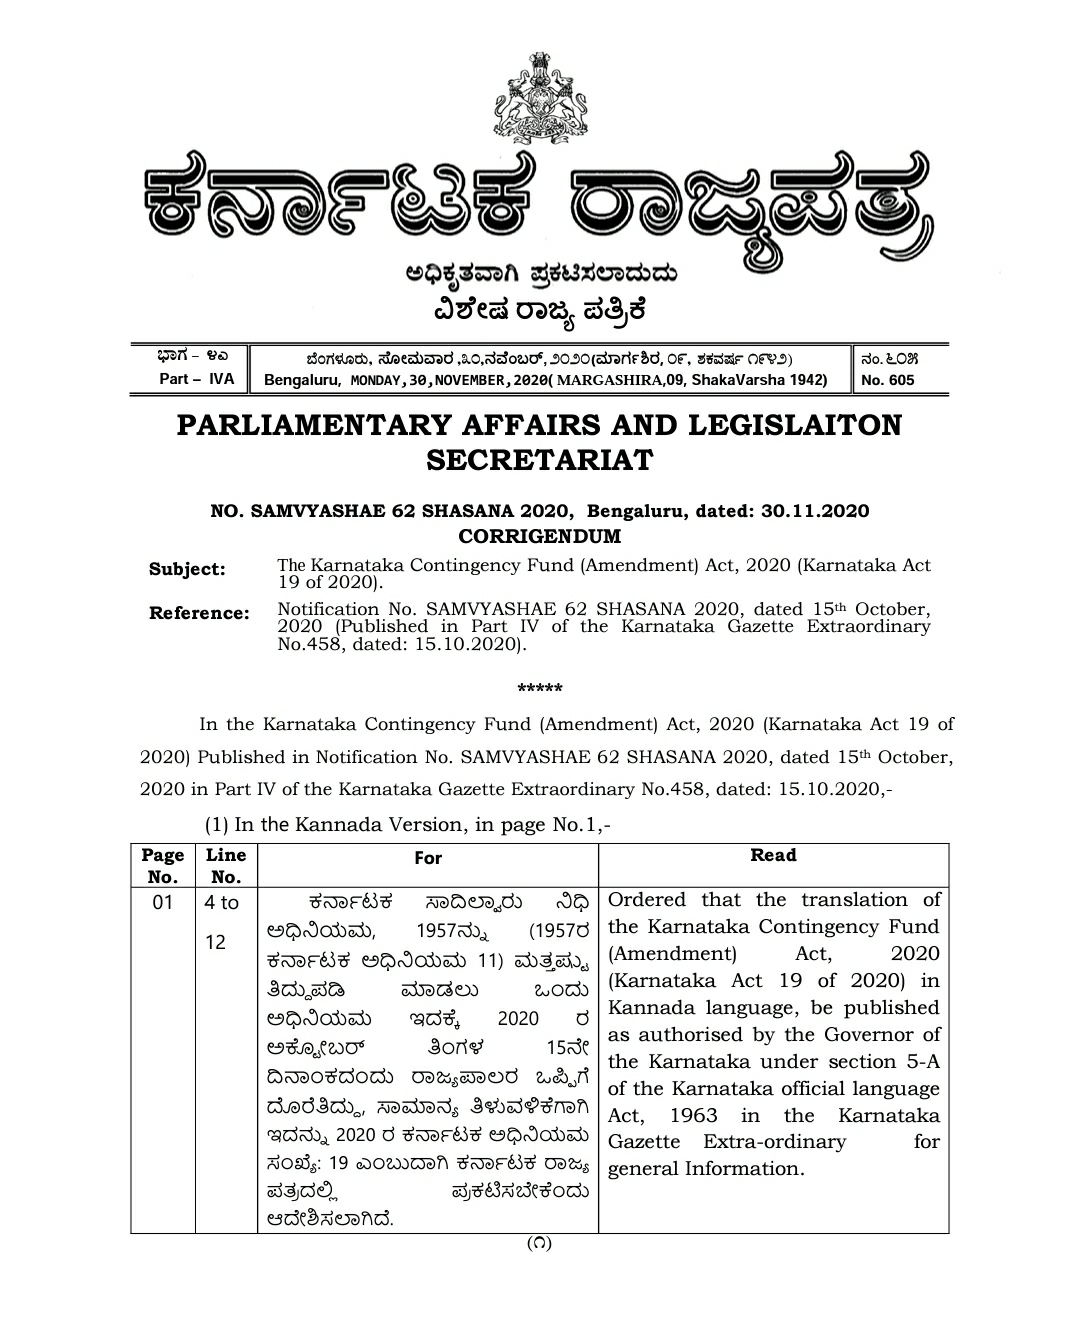 Corrigendum to the Karnataka Contingency Fund (Amendment) Act, 2020 (Karnataka Act 19 of 2020).